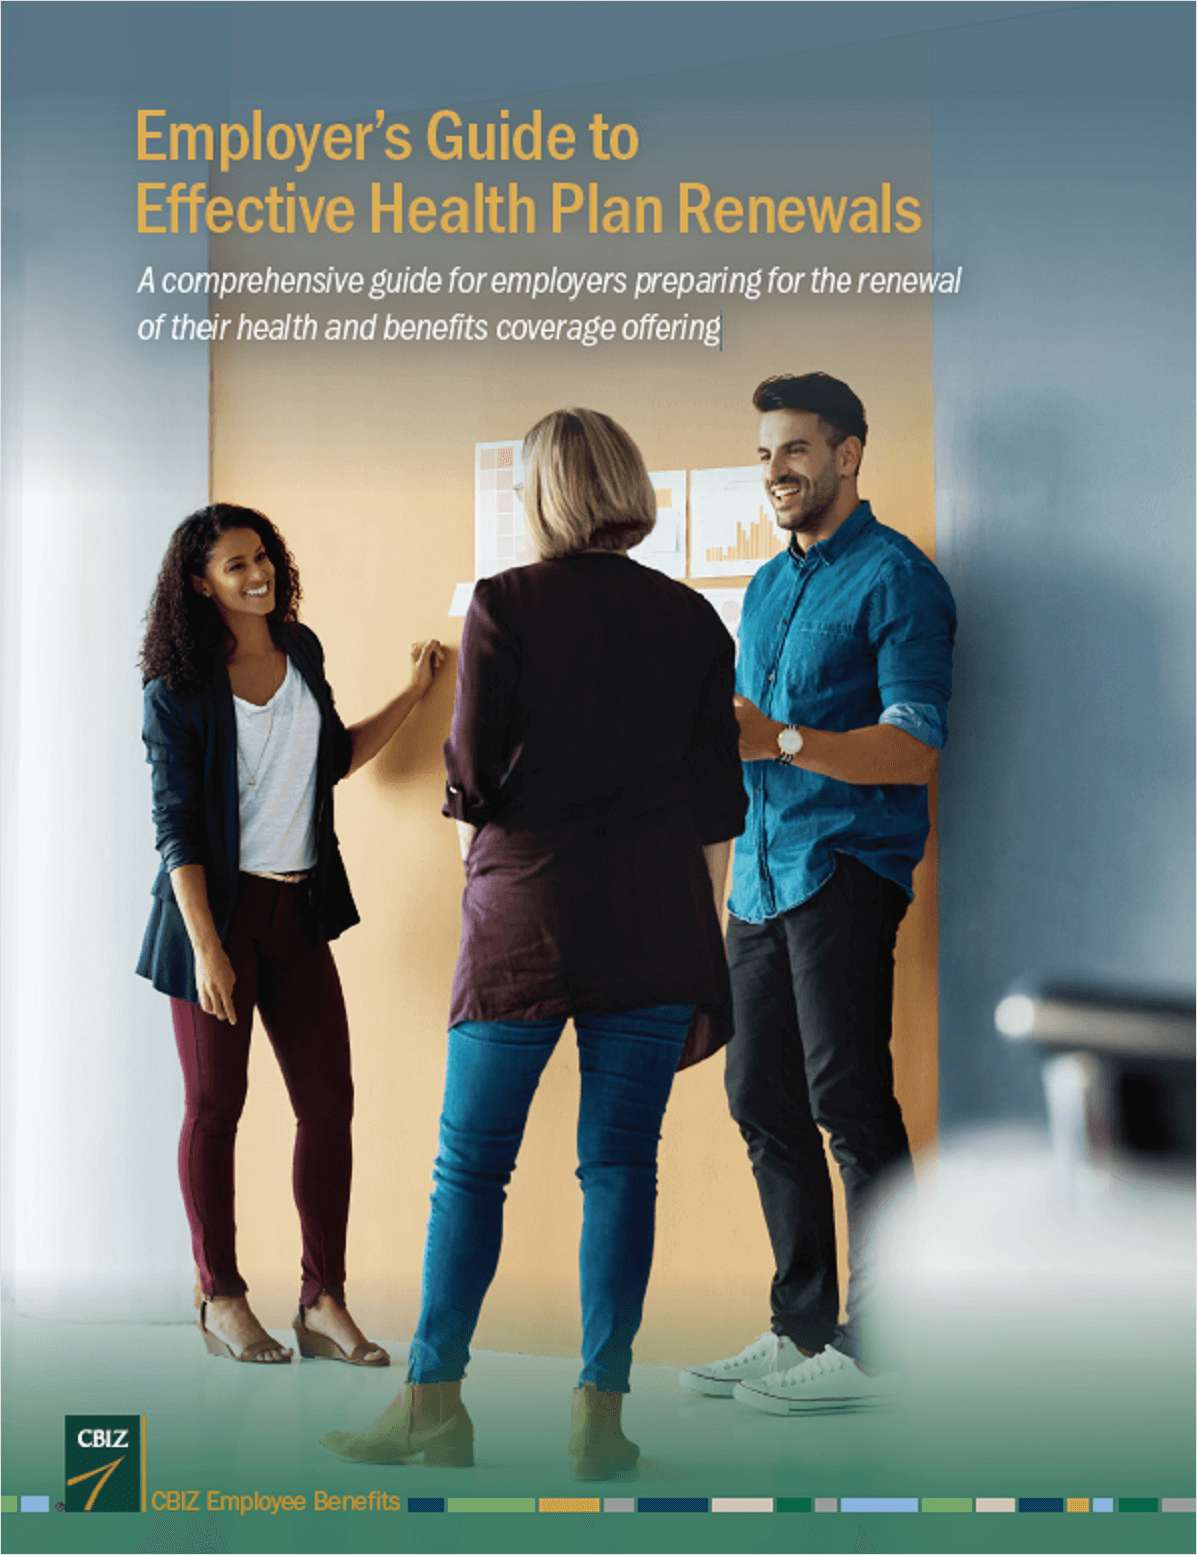 Employer's Guide to Effective Health Plan Renewals in February